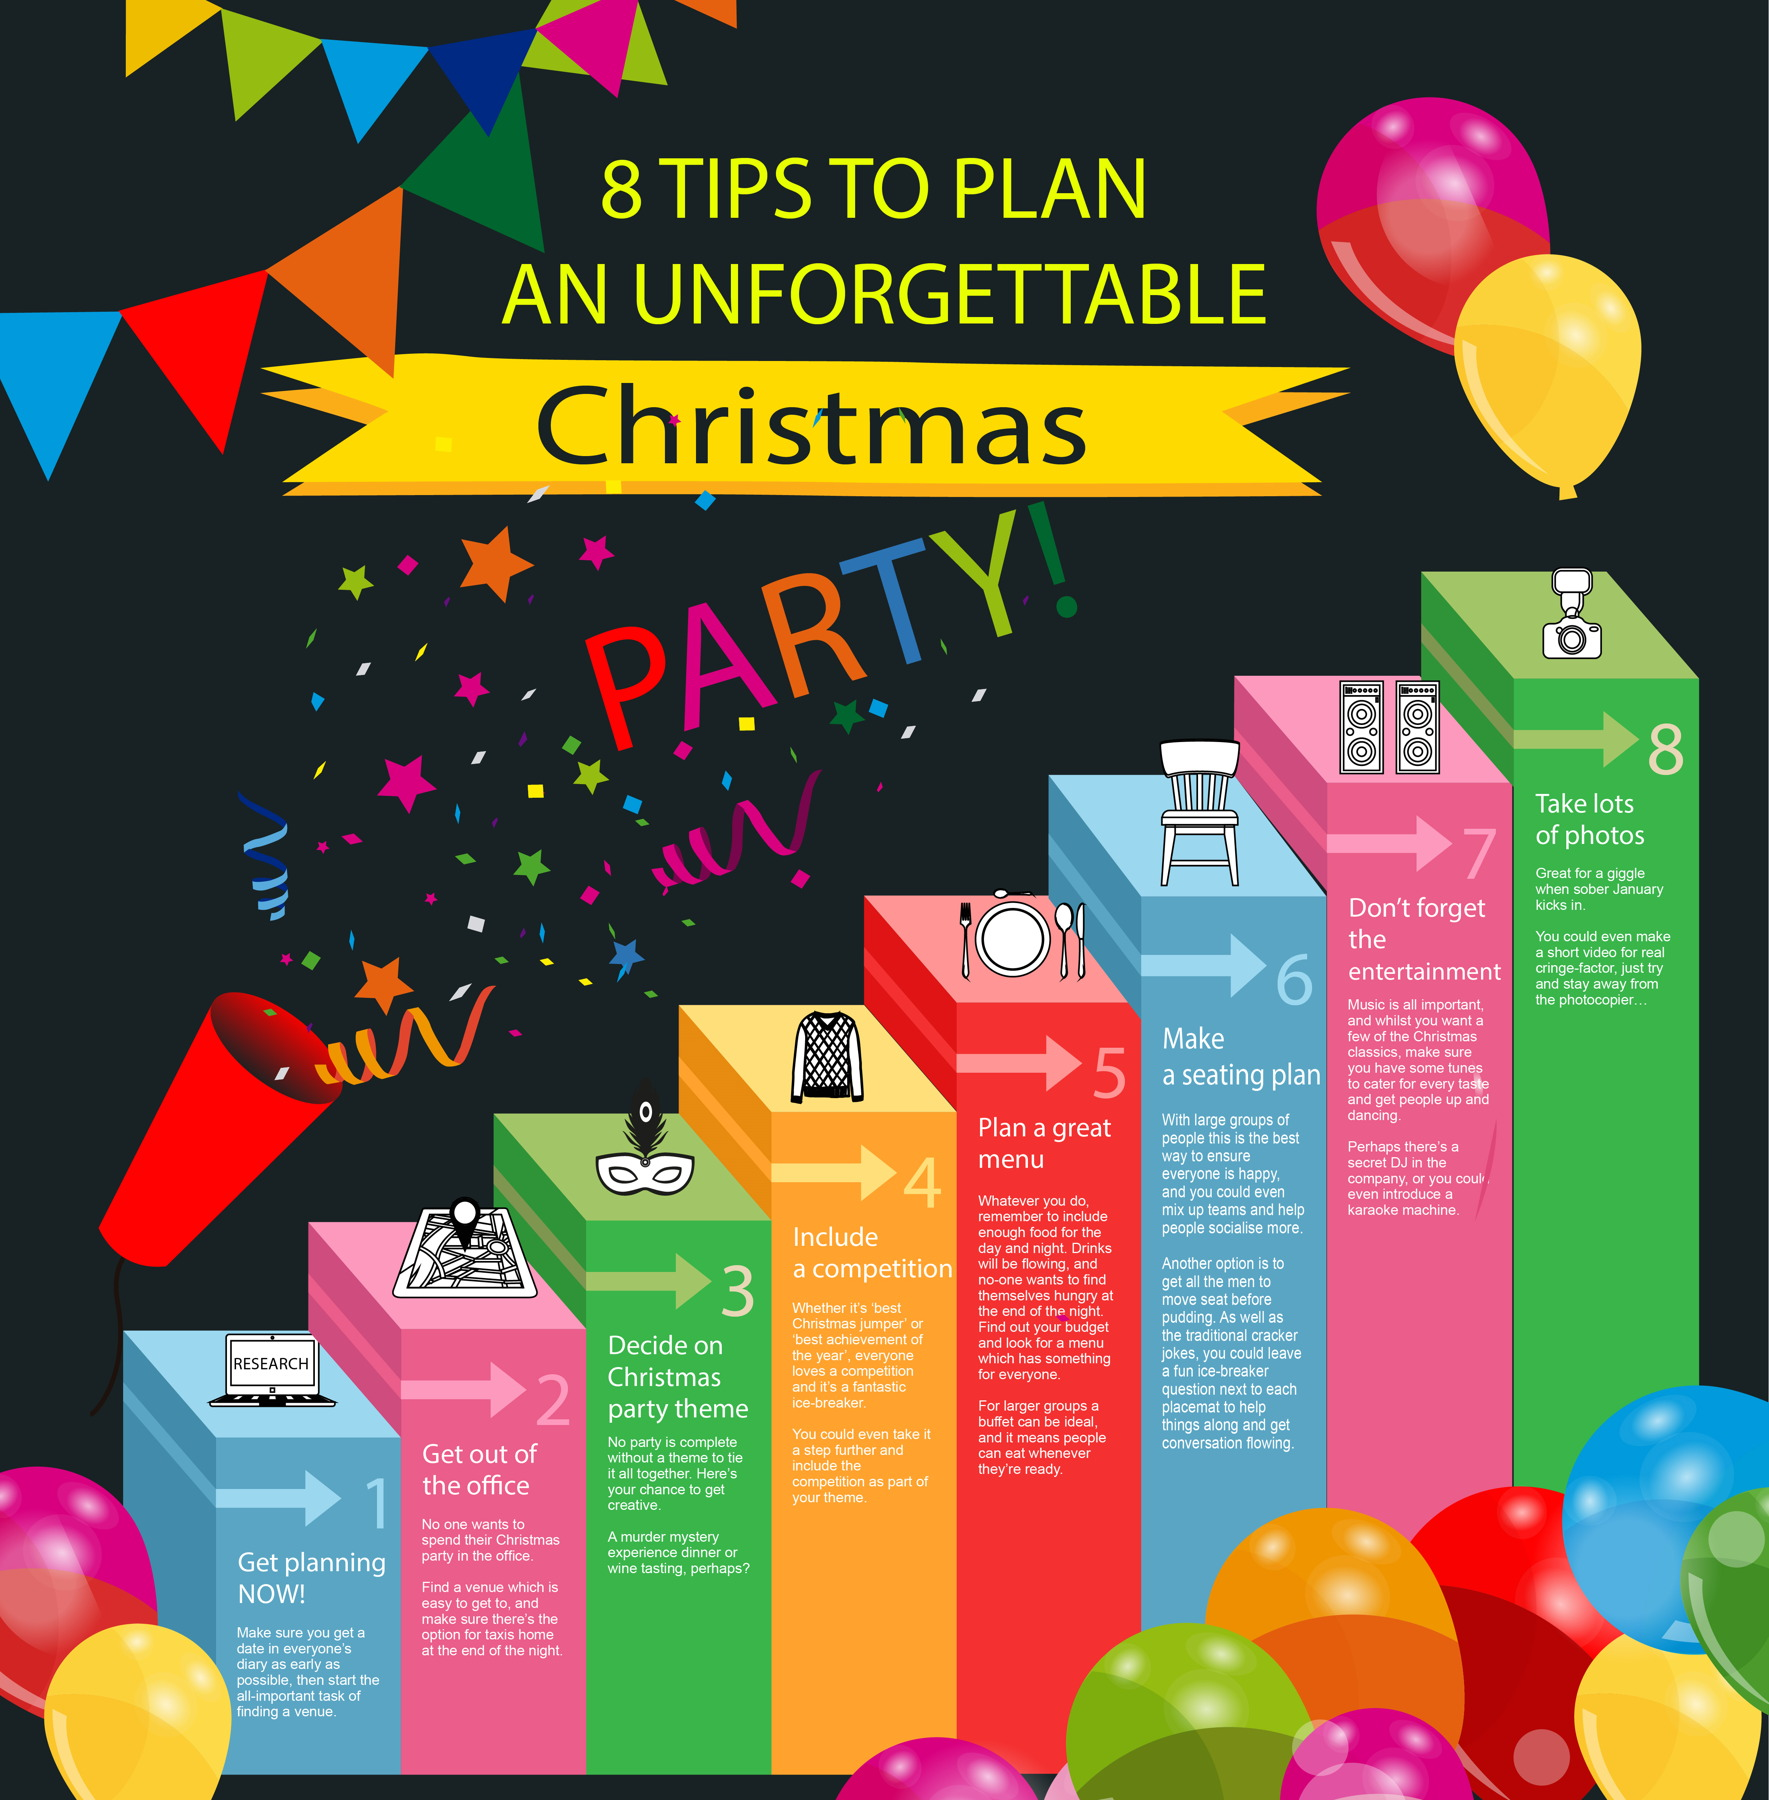 Christmas Party Planning.How To Plan An Office Christmas Party In 8 Steps